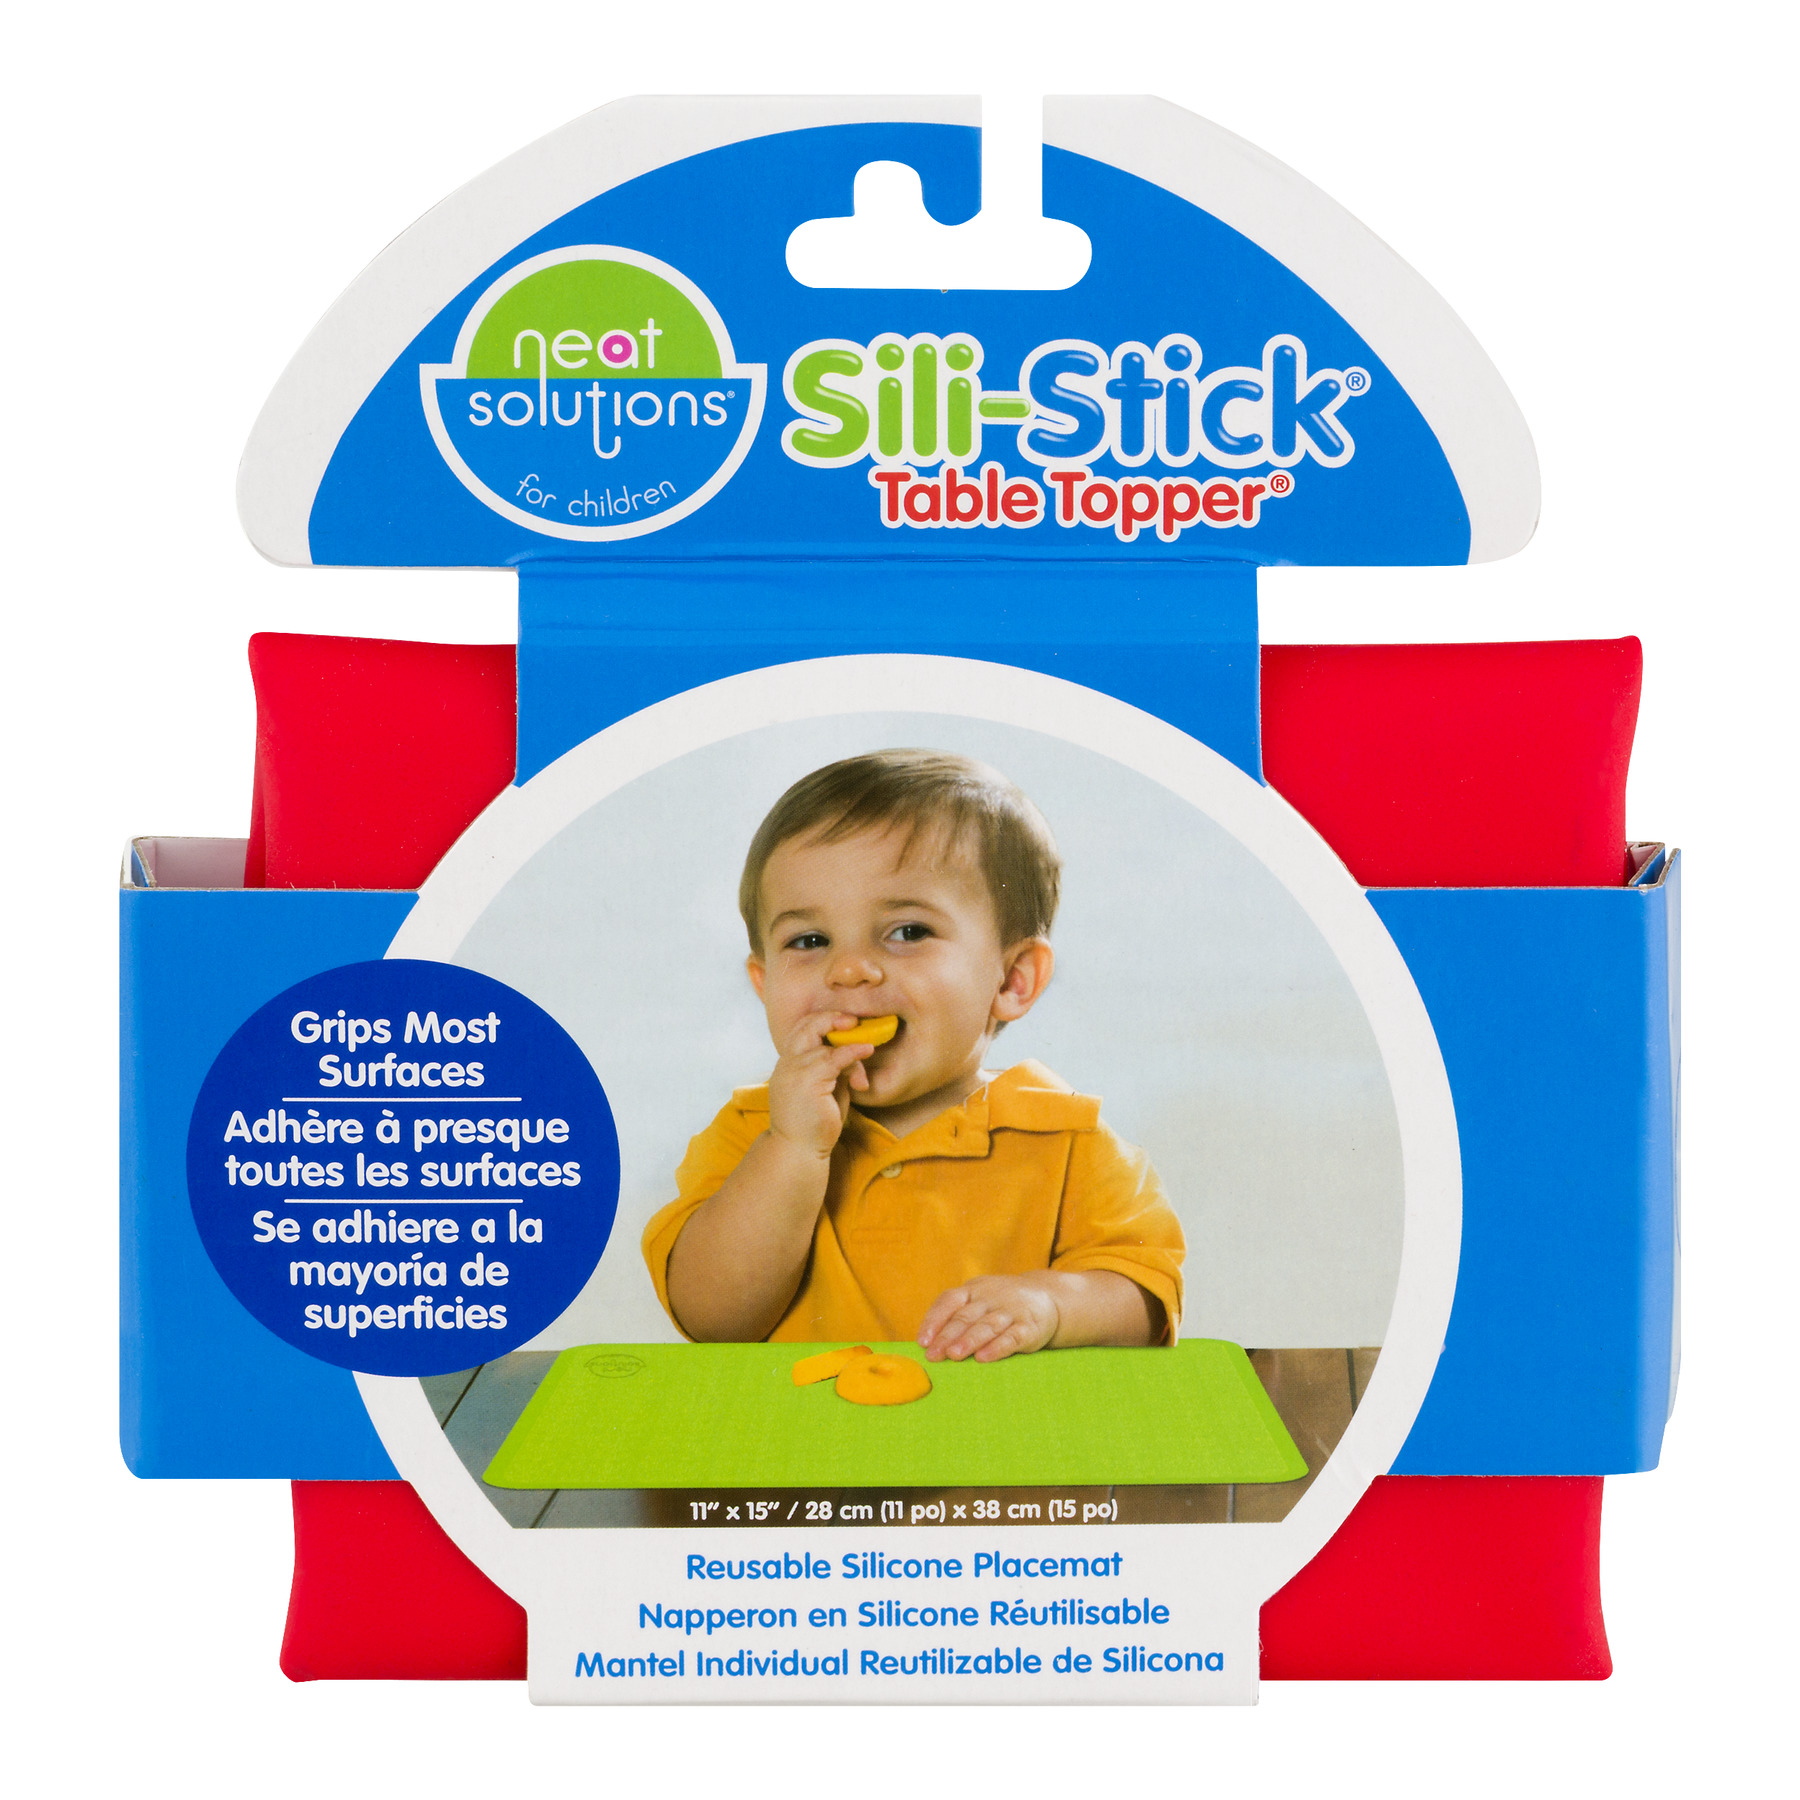 Neat Solutions Sili-Stick Table Topper, 1.0 CT